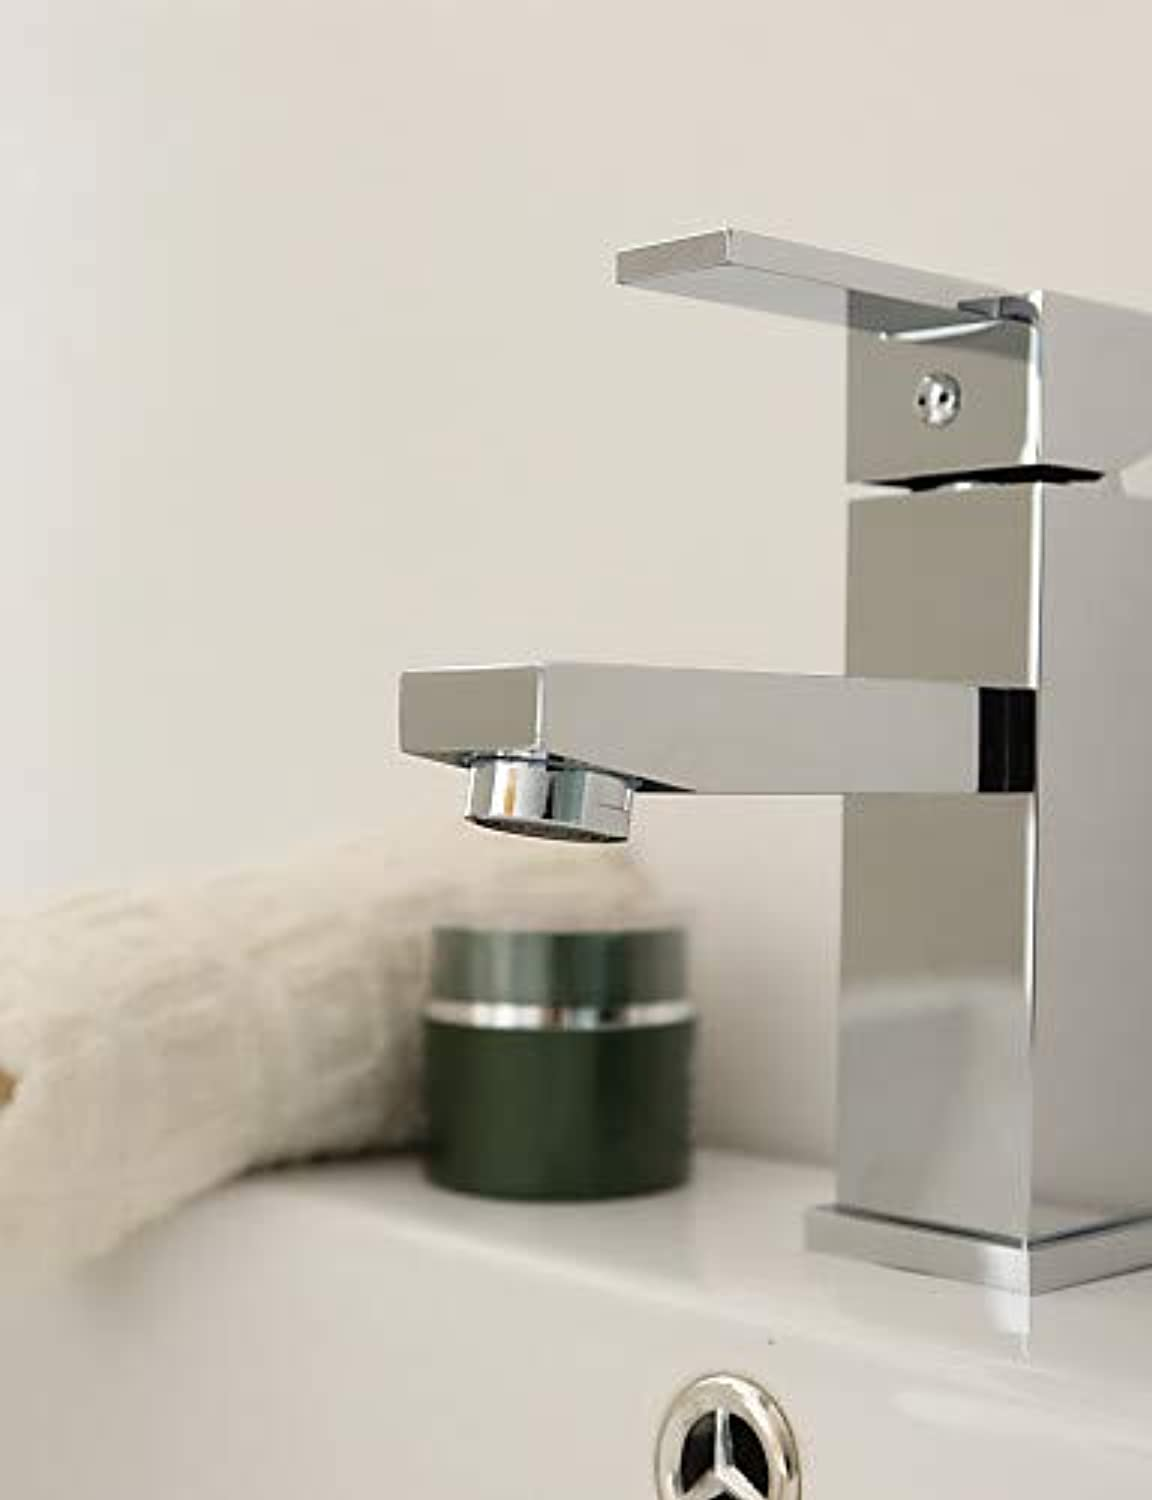 Mainstream home LPZSQ Tap Bathroom Sink Faucets Contemporary Stainless Steel Stainless Steel  644